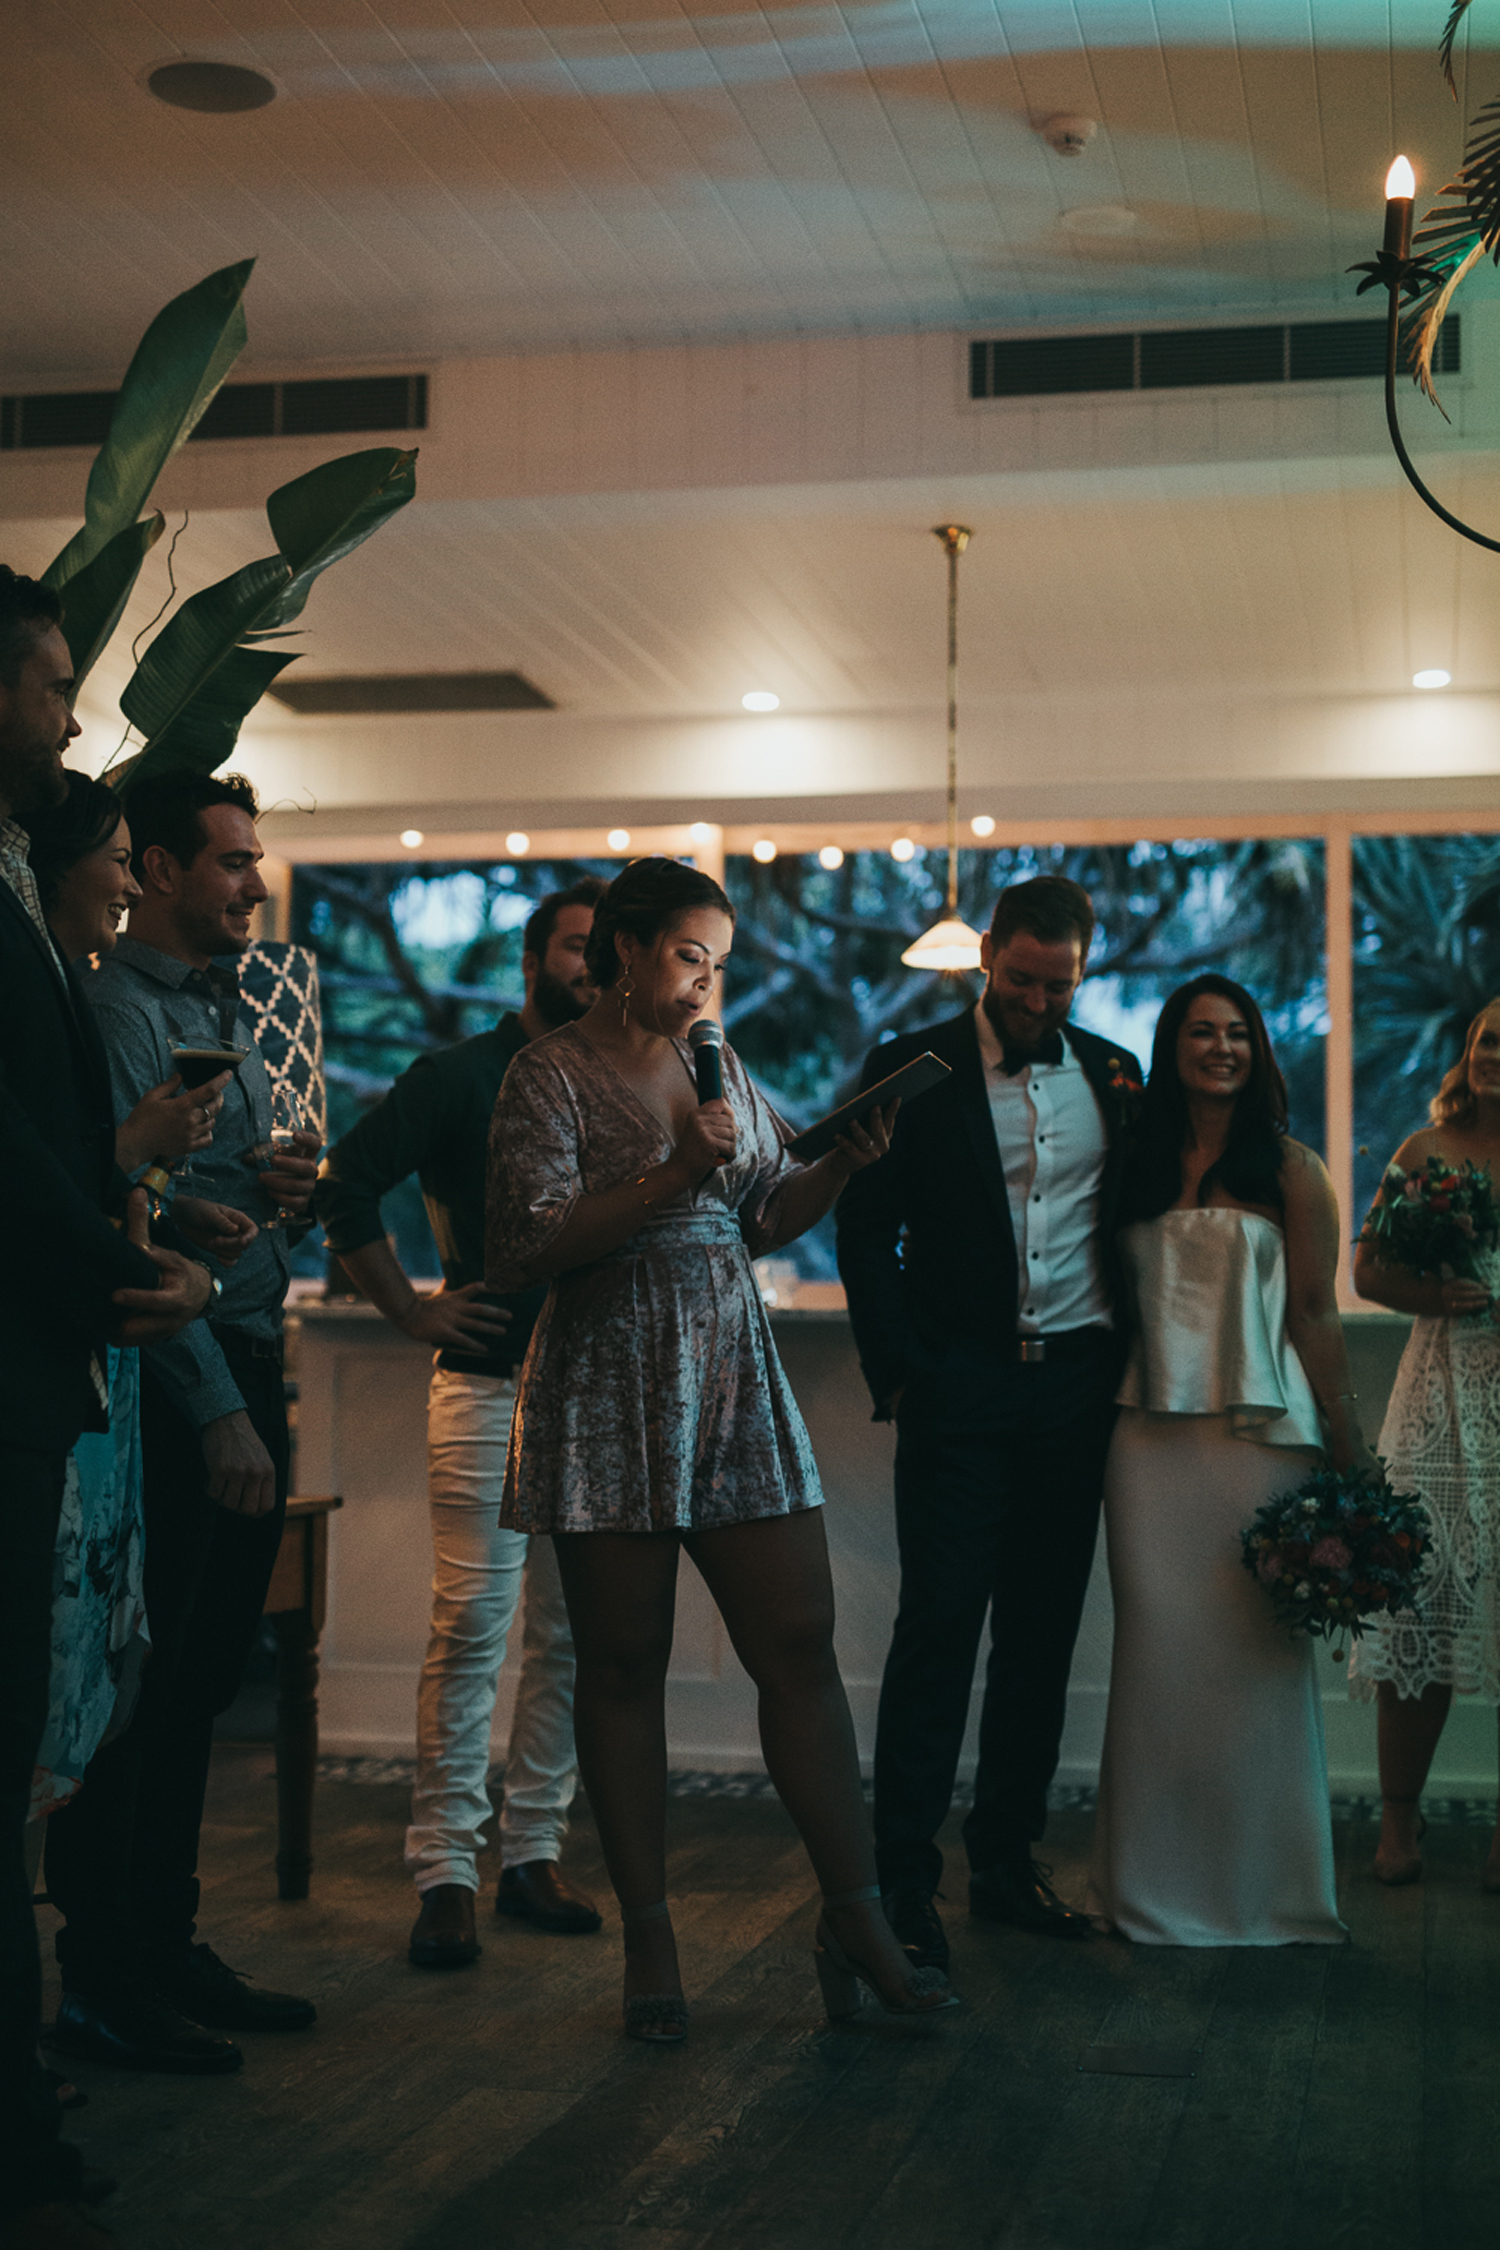 096-halcyon_house_byron_bay_wedding_photographer.jpg